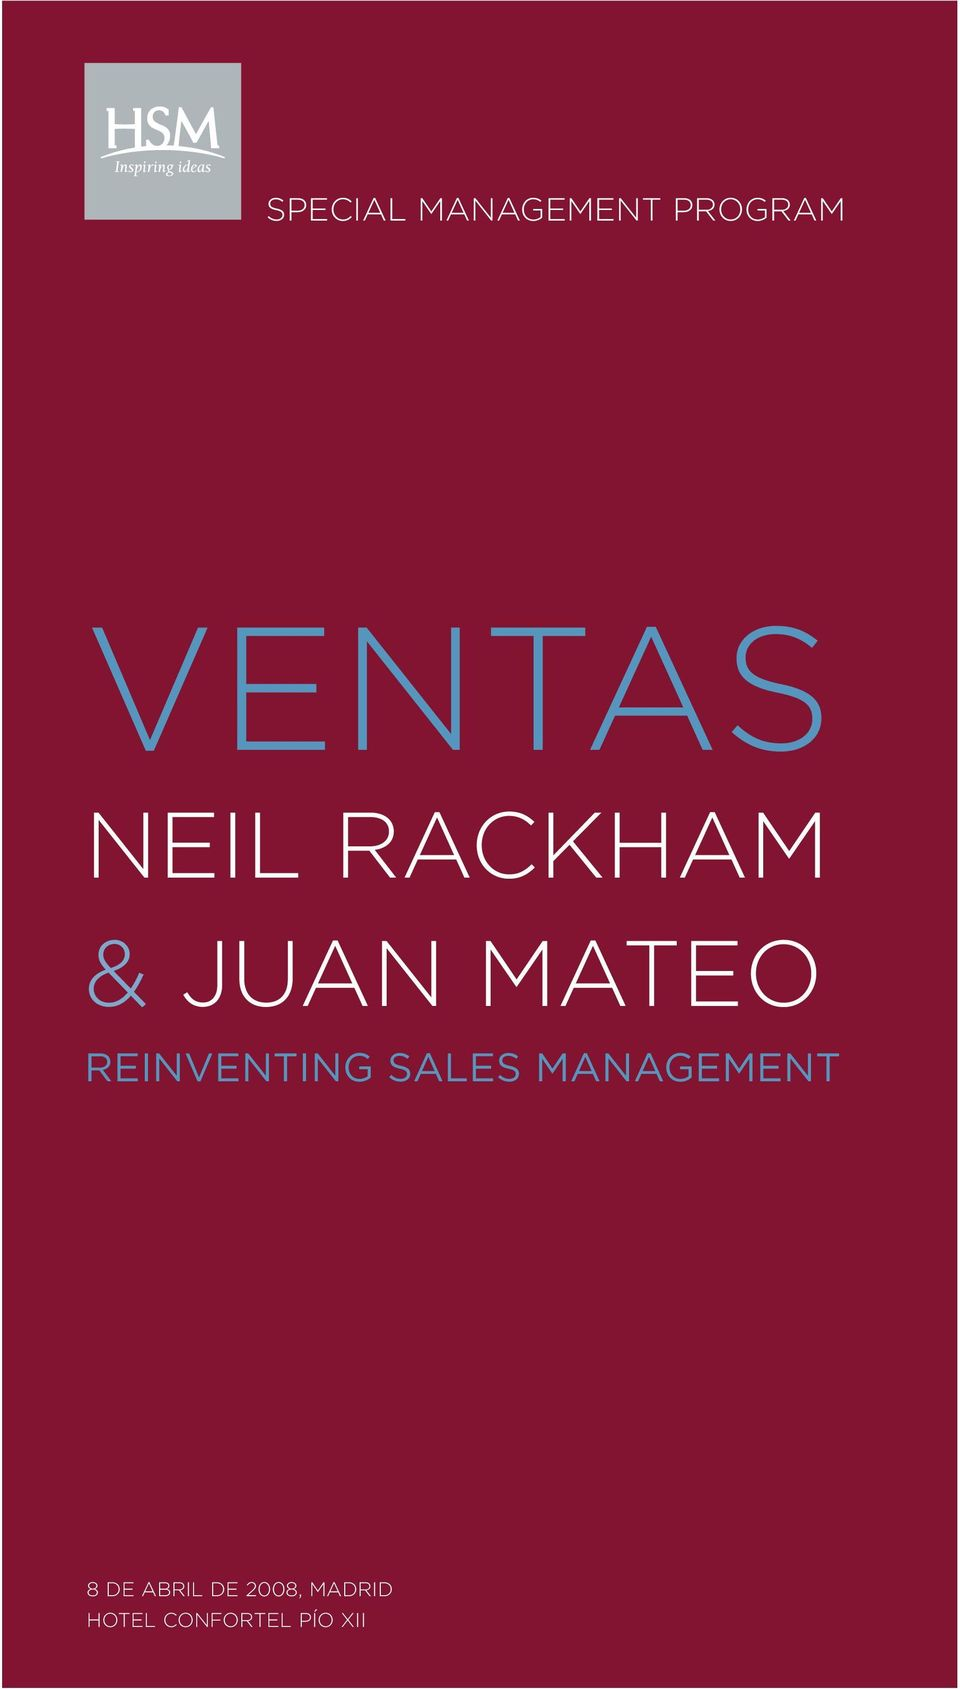 REINVENTING SALES MANAGEMENT 8 DE